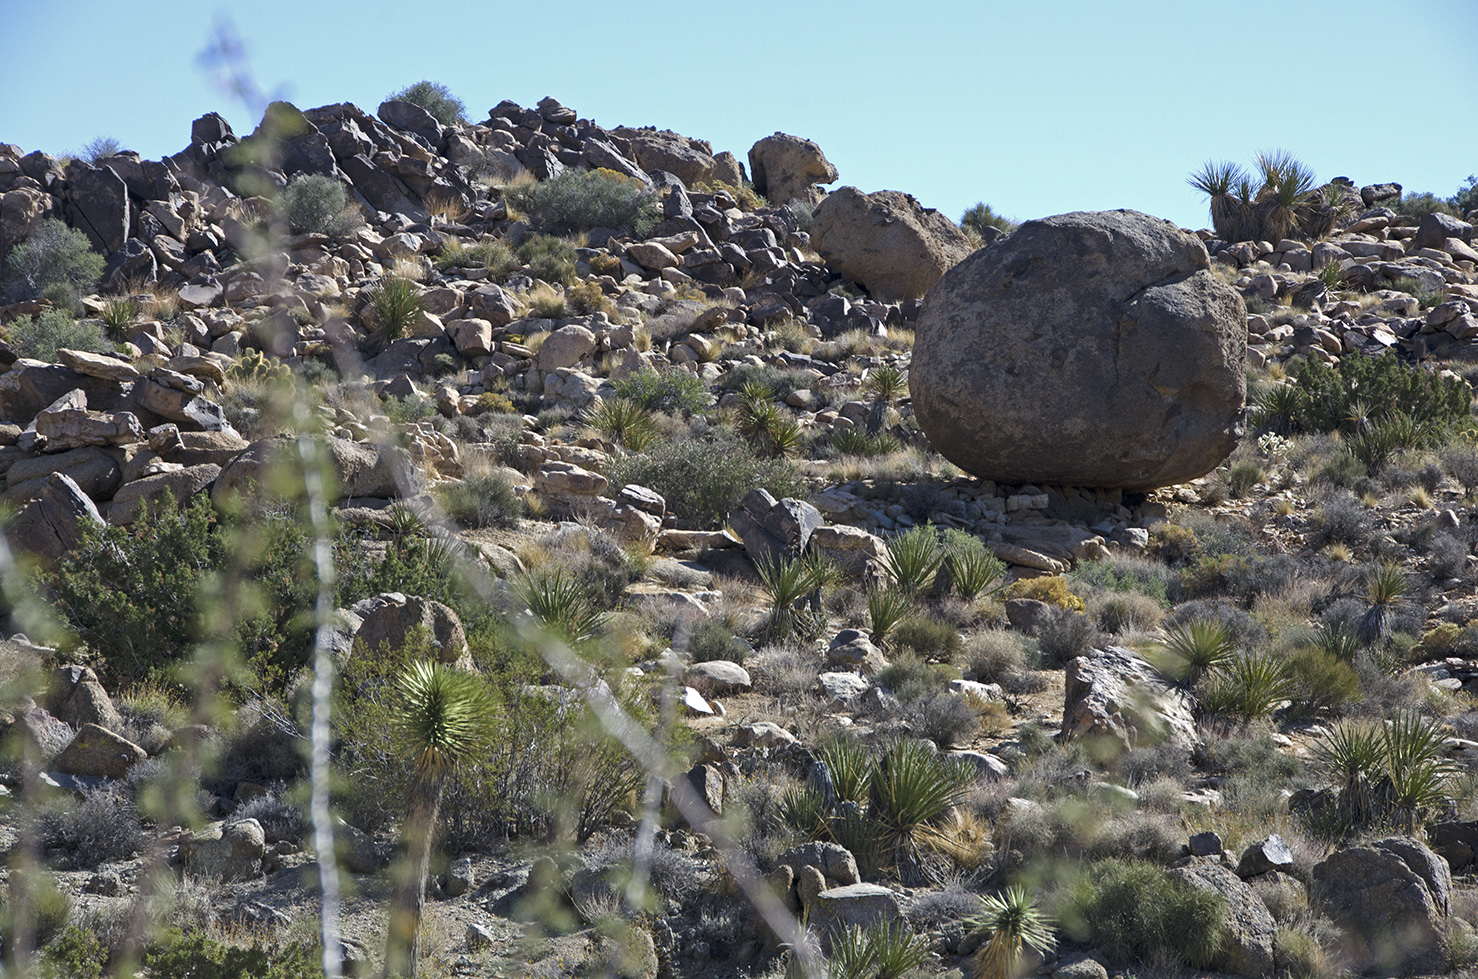 I wonder how strong of an earthquake would be required to get that boulder rolling.